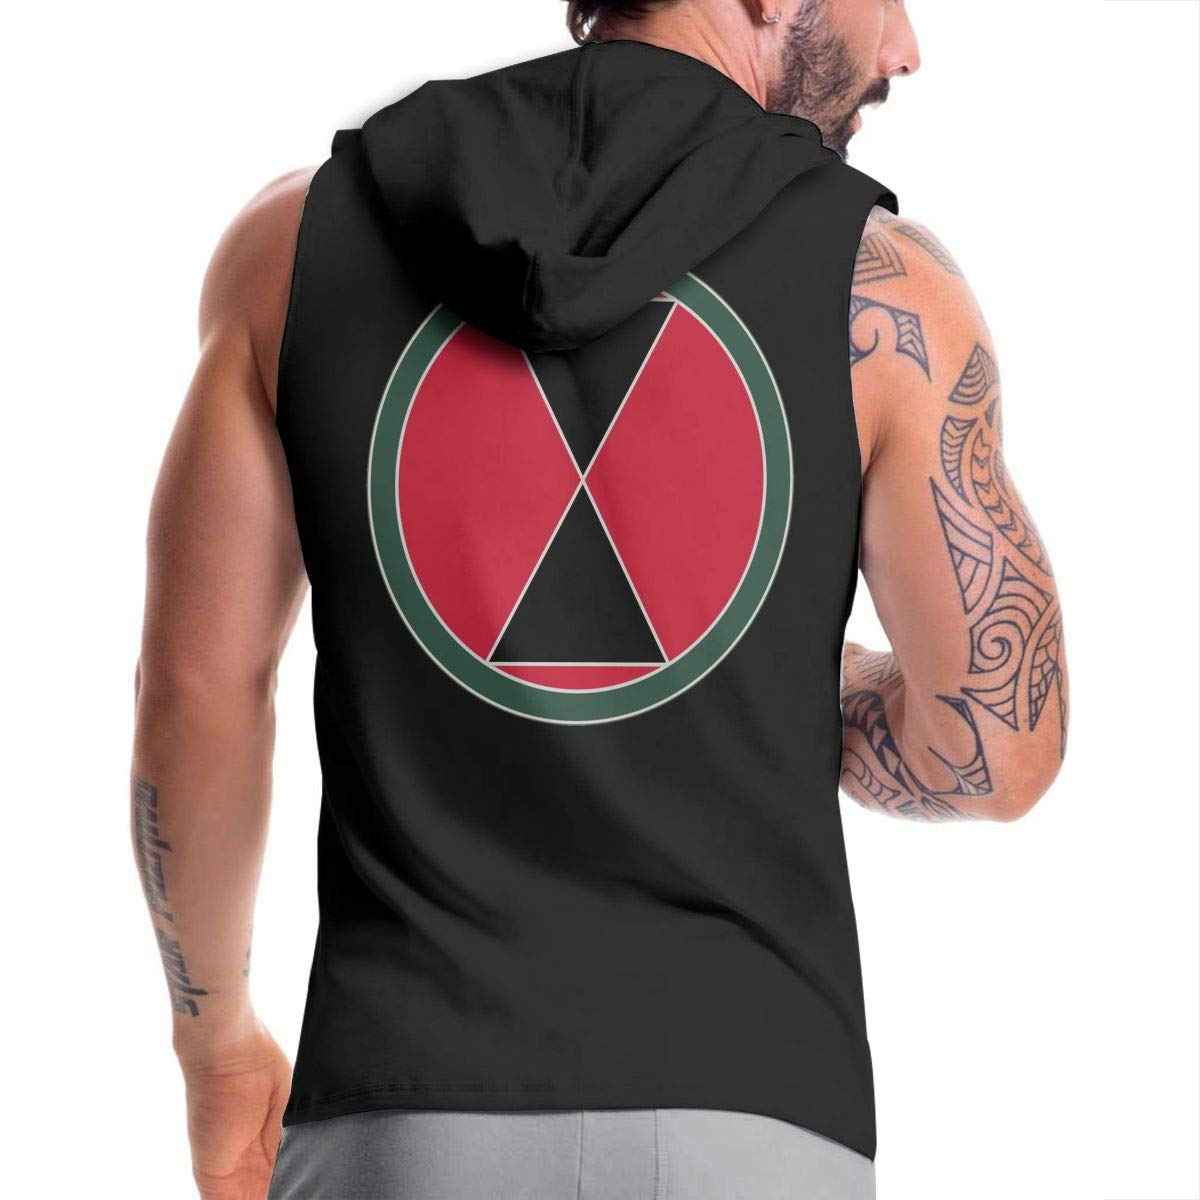 7th Infantry Division Mens Hipster Hip Hop Hoodies Shirts